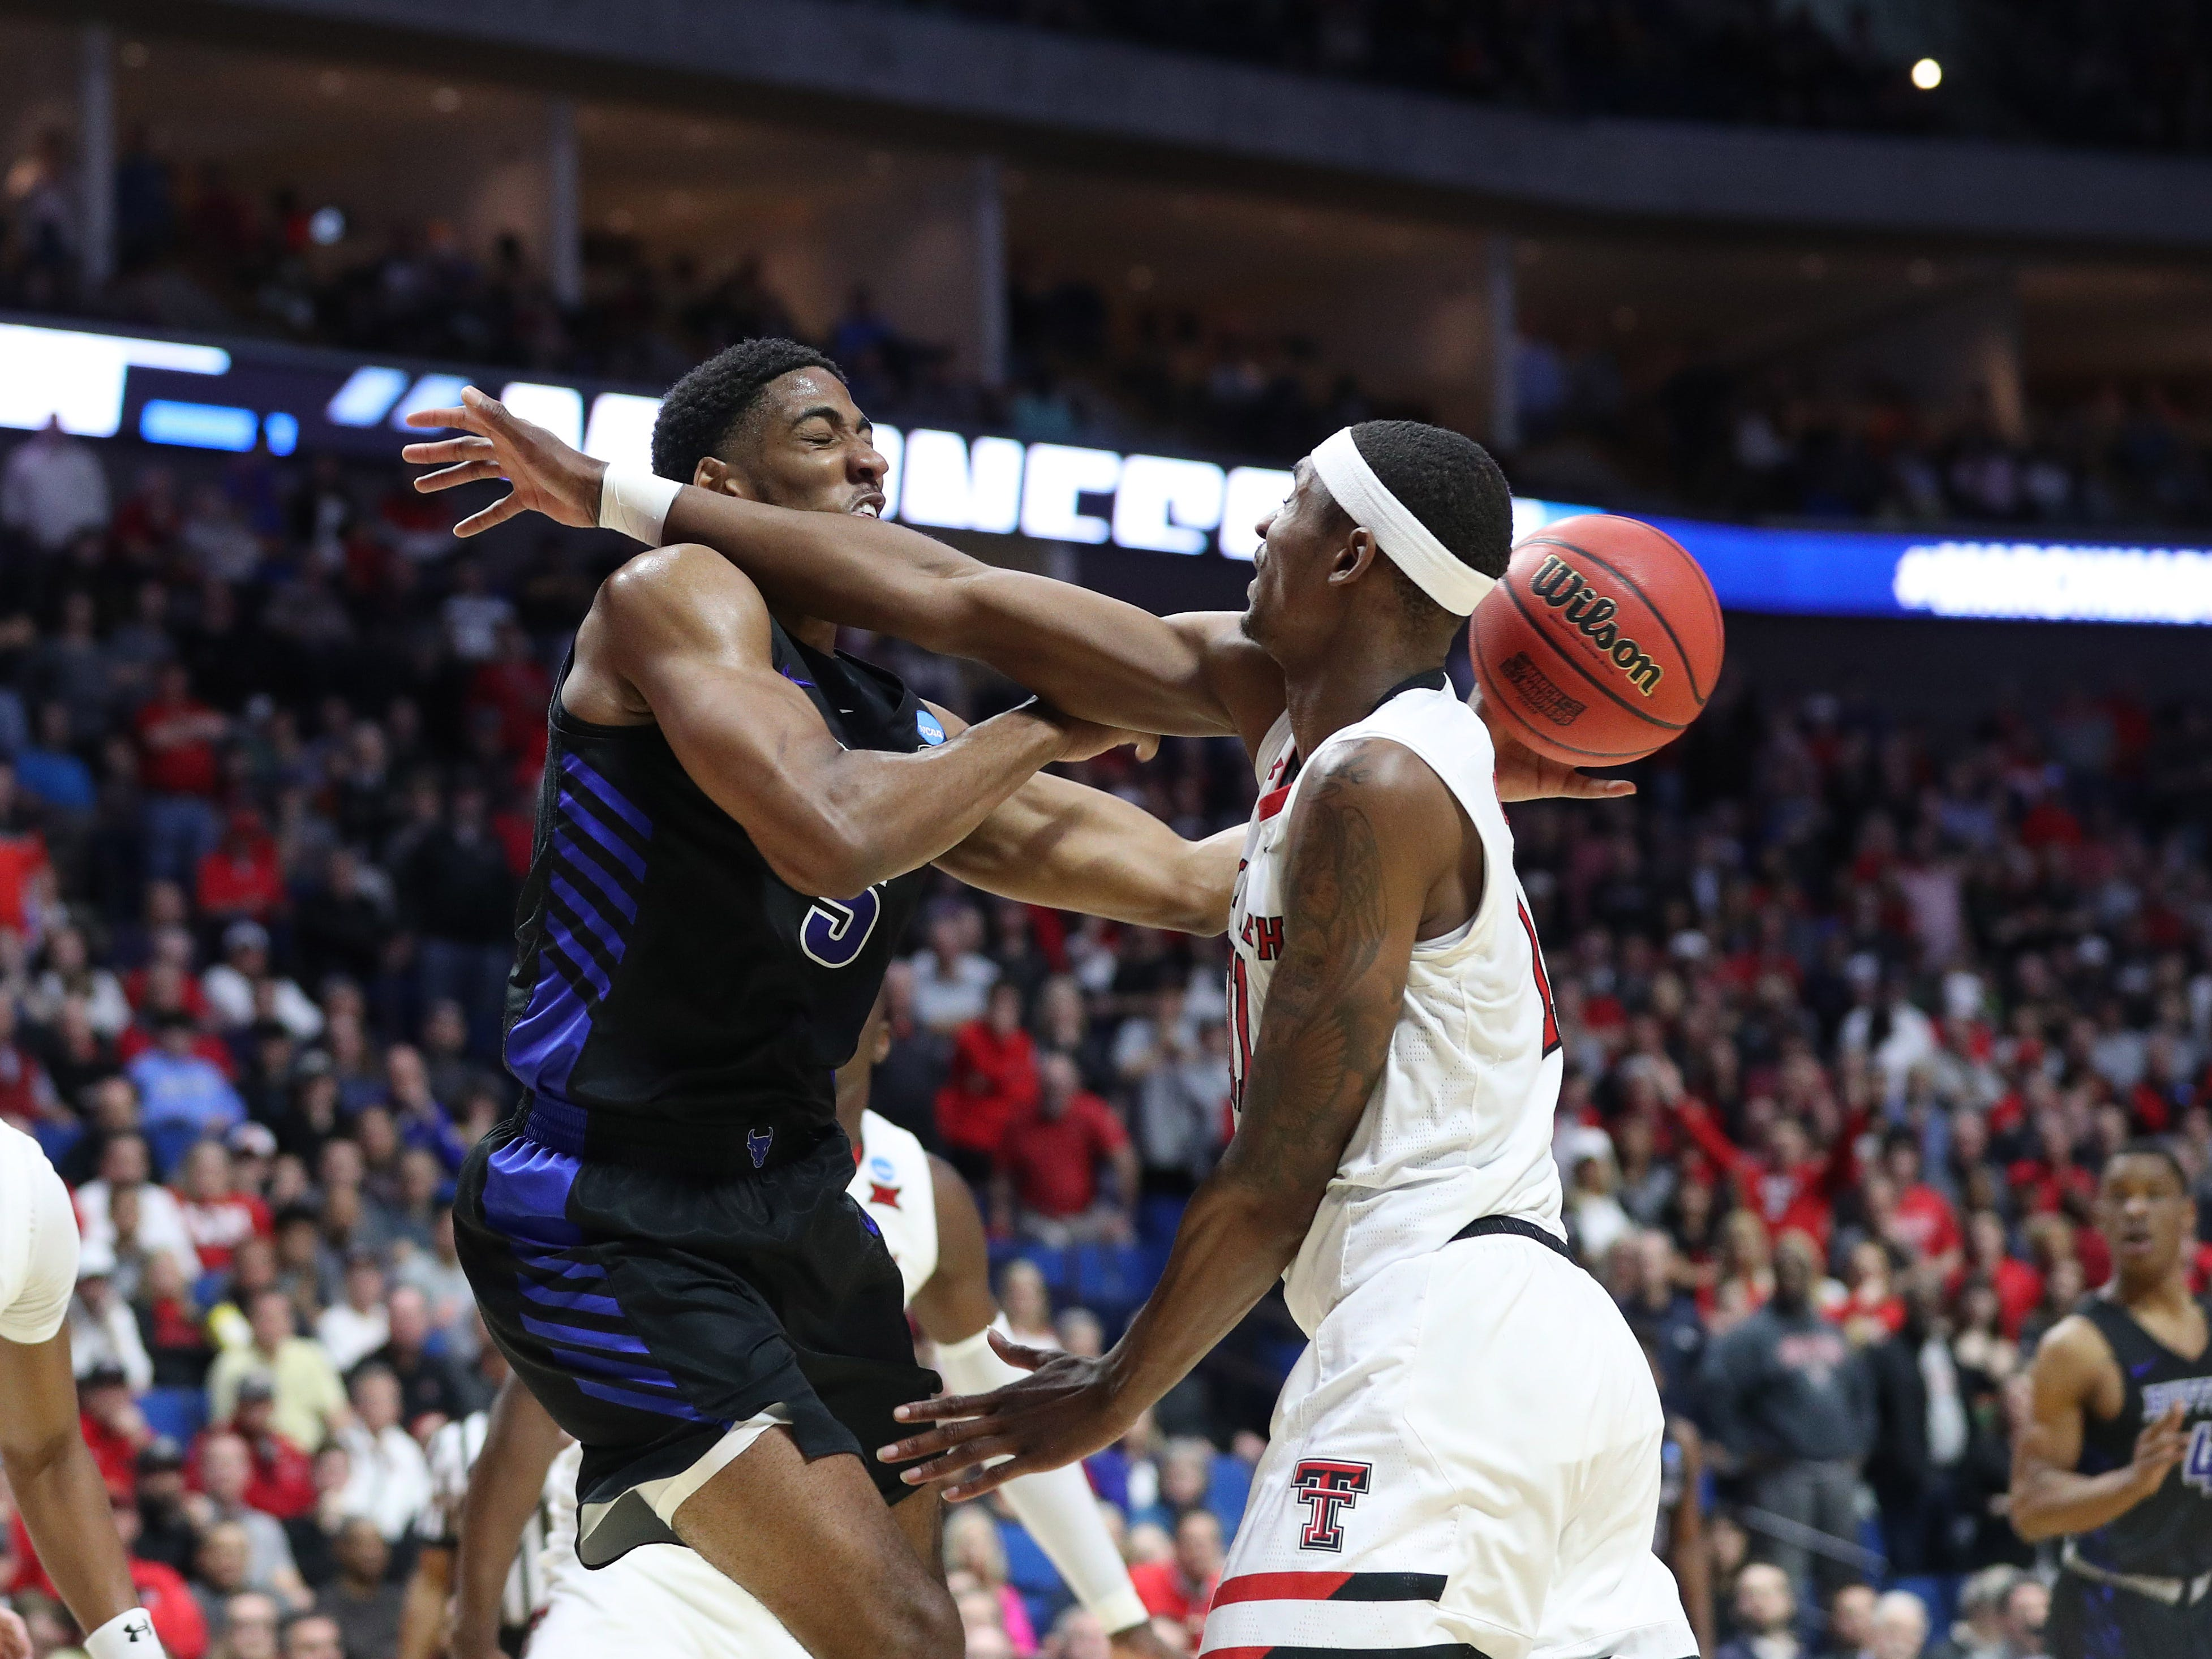 Round of 32: Buffalo Bulls guard CJ Massinburg (5) passes the ball as Texas Tech Red Raiders forward Tariq Owens (11) defends during the second half.